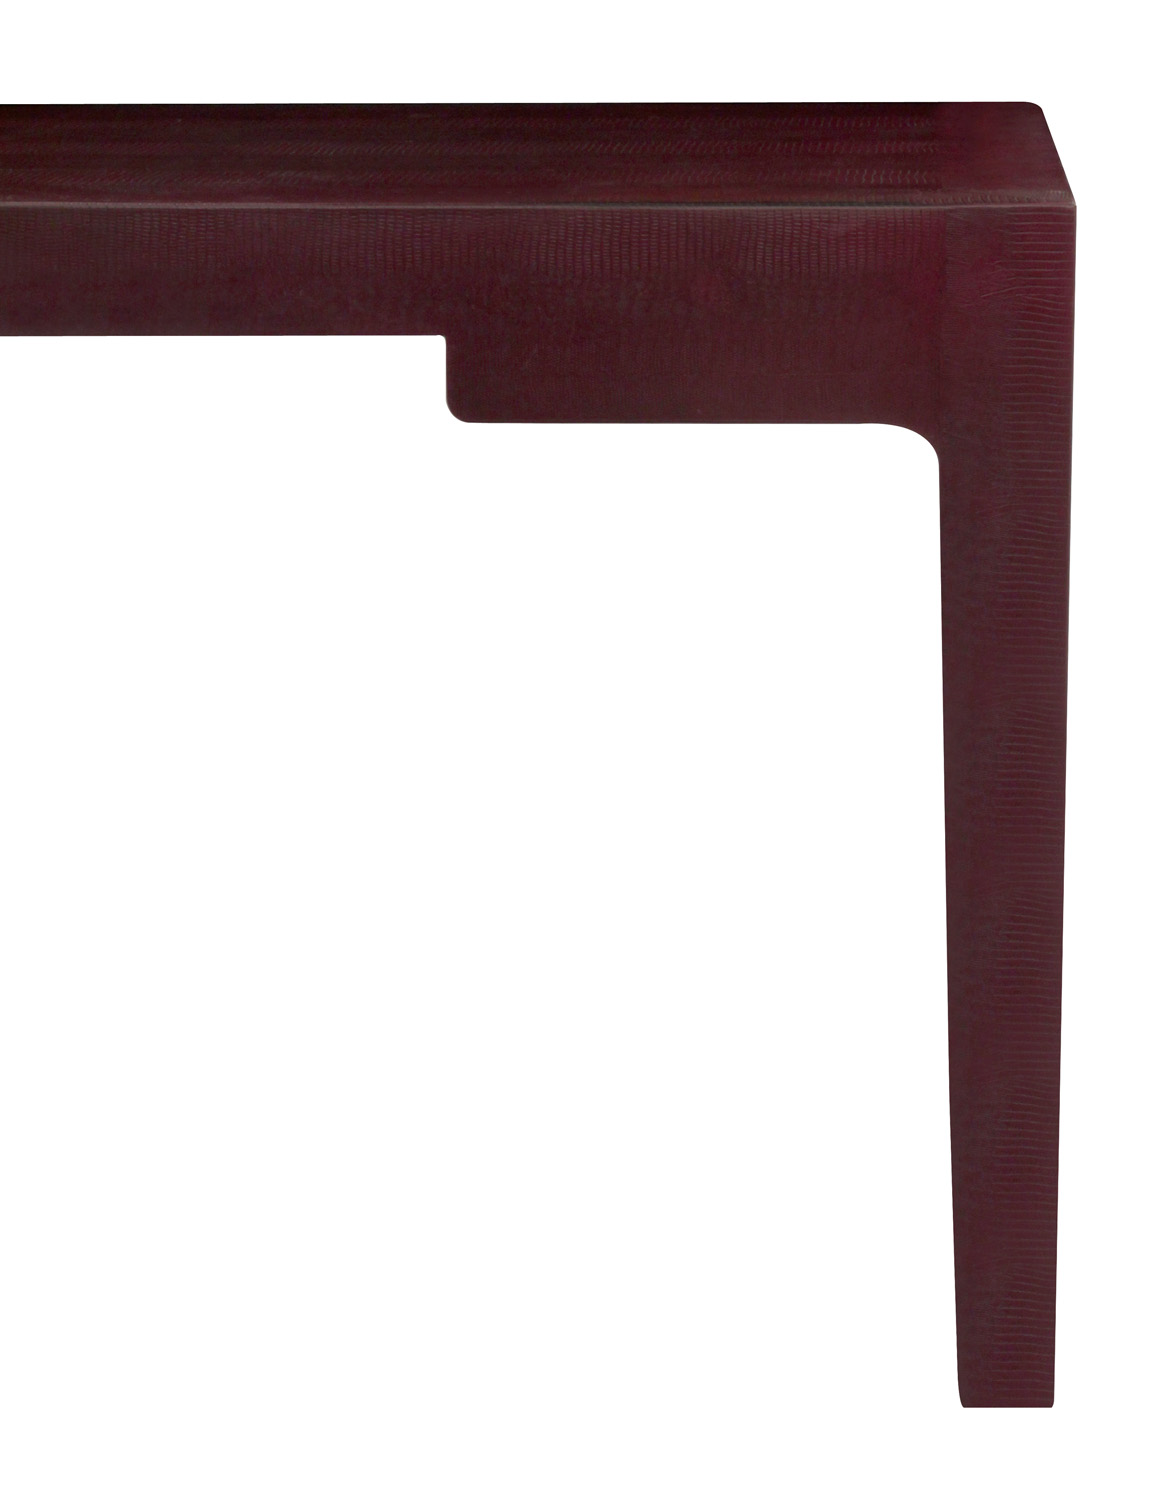 Springer 85 Chinese Parsons Style desk80 detail2 hires.jpg